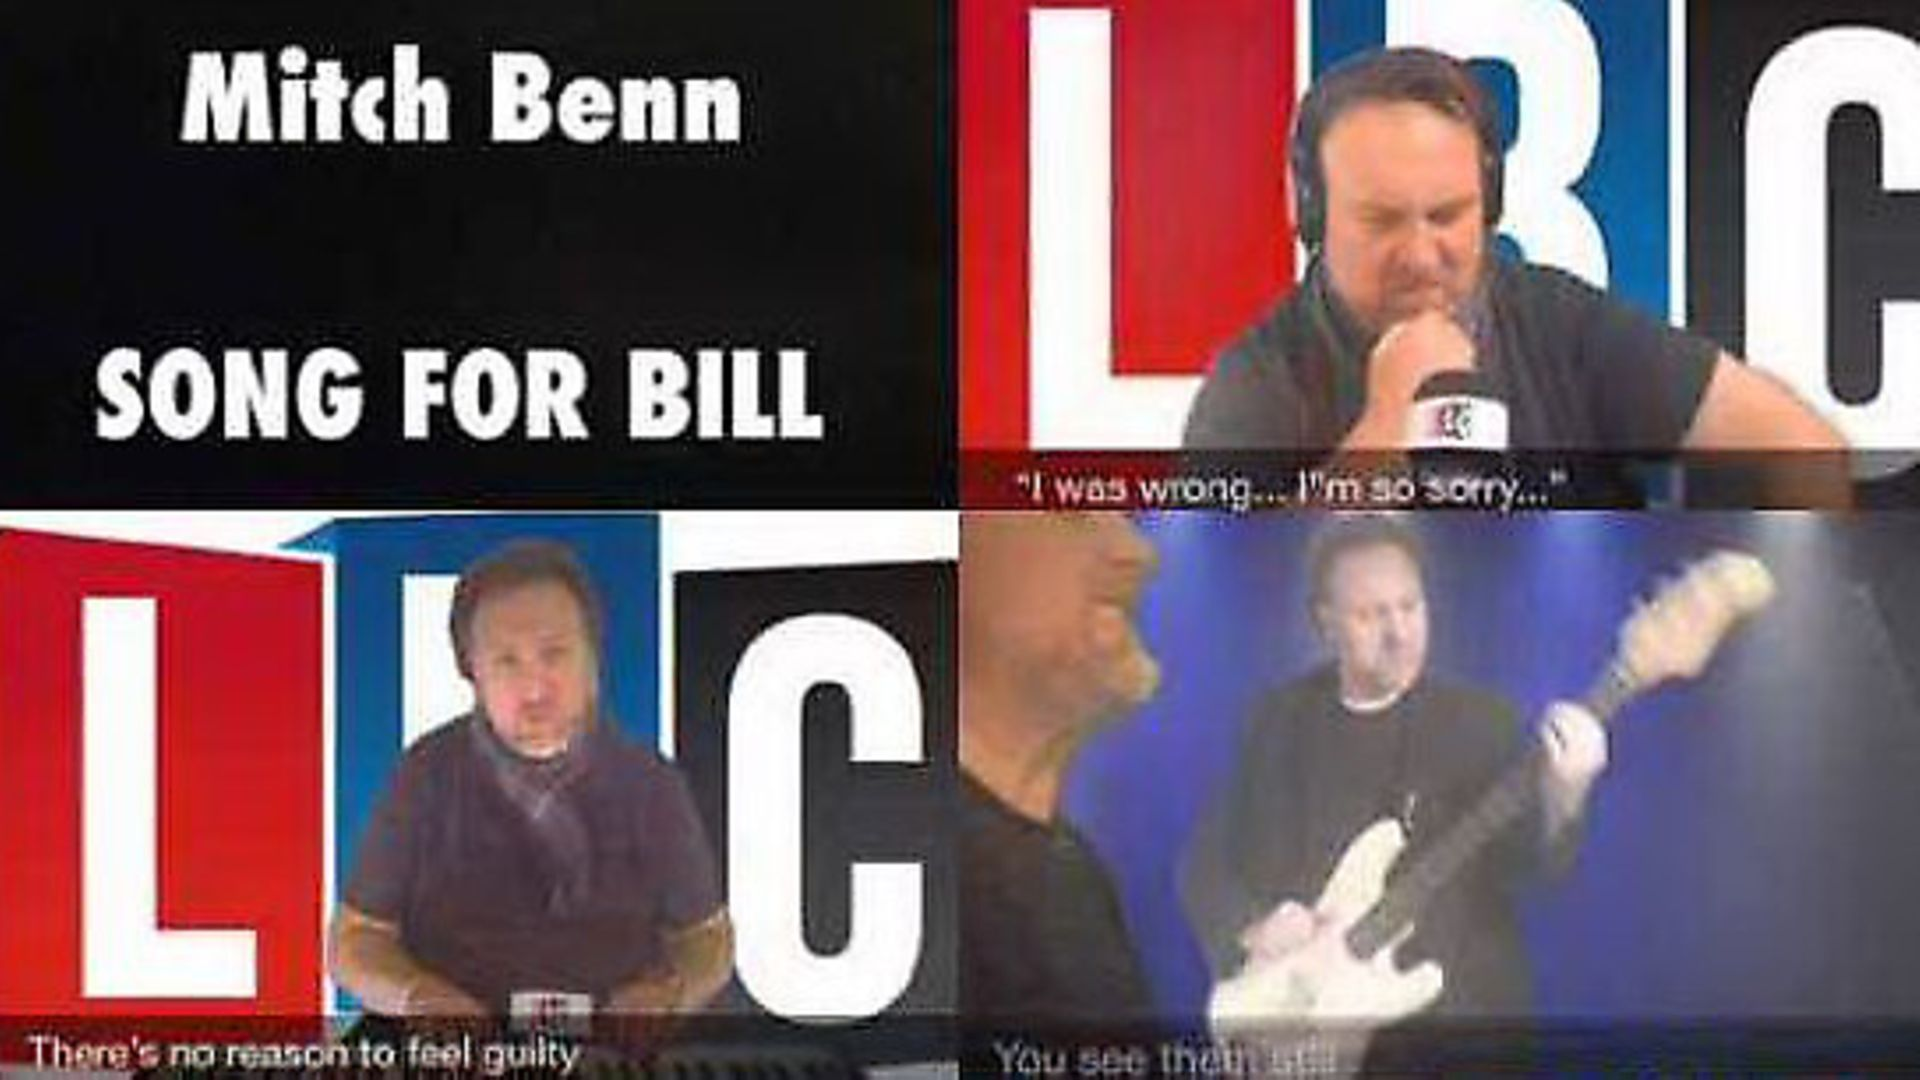 Mich Benn's 'Song for Bill' is now avaliable on YouTube. Picture: YouTube - Credit: Archant